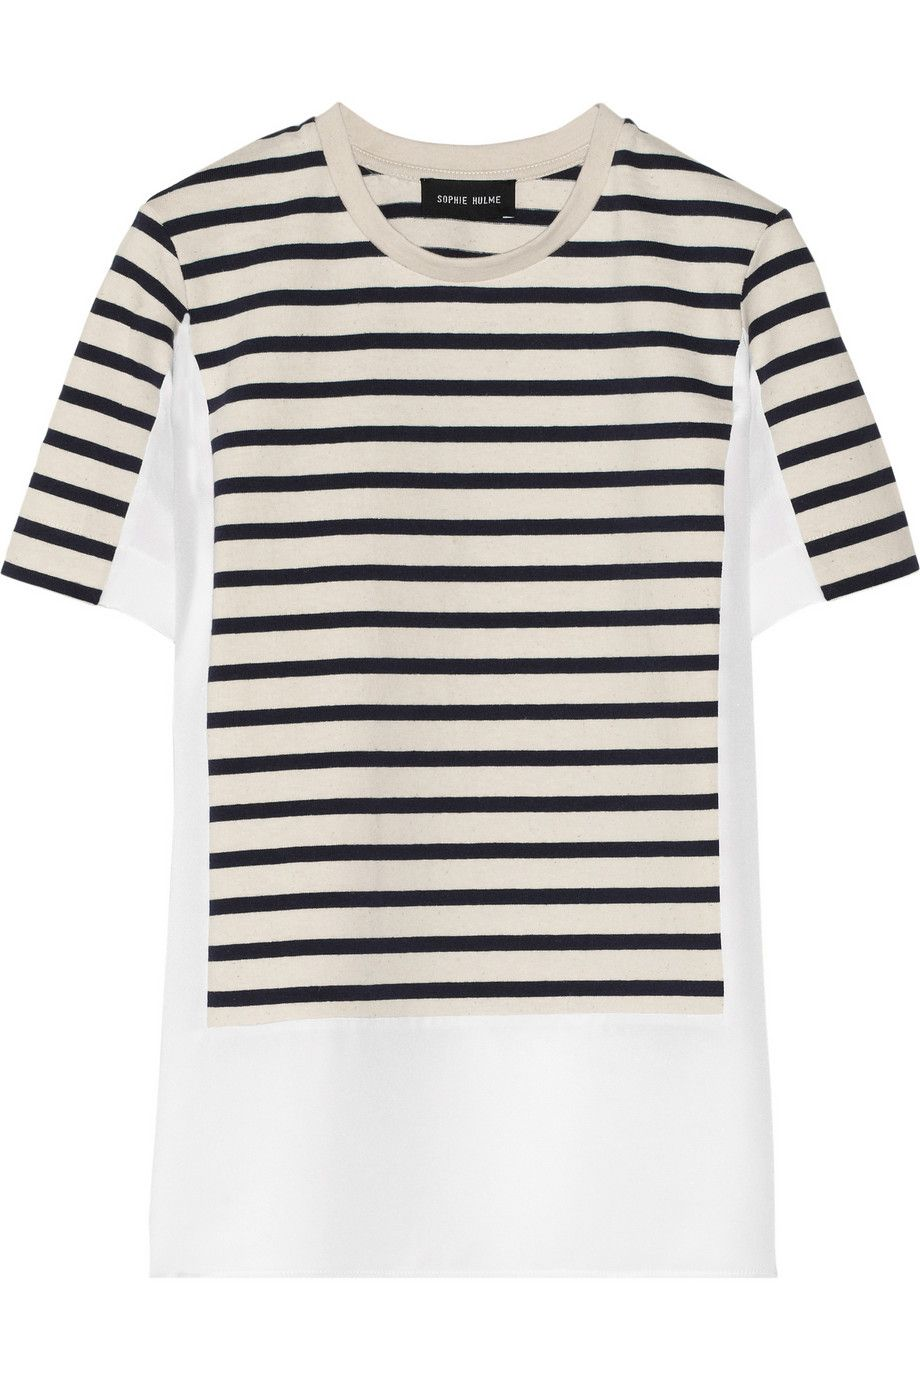 Sophie Hulme|Paneled striped jersey and crepe top|NET-A-PORTER.COM